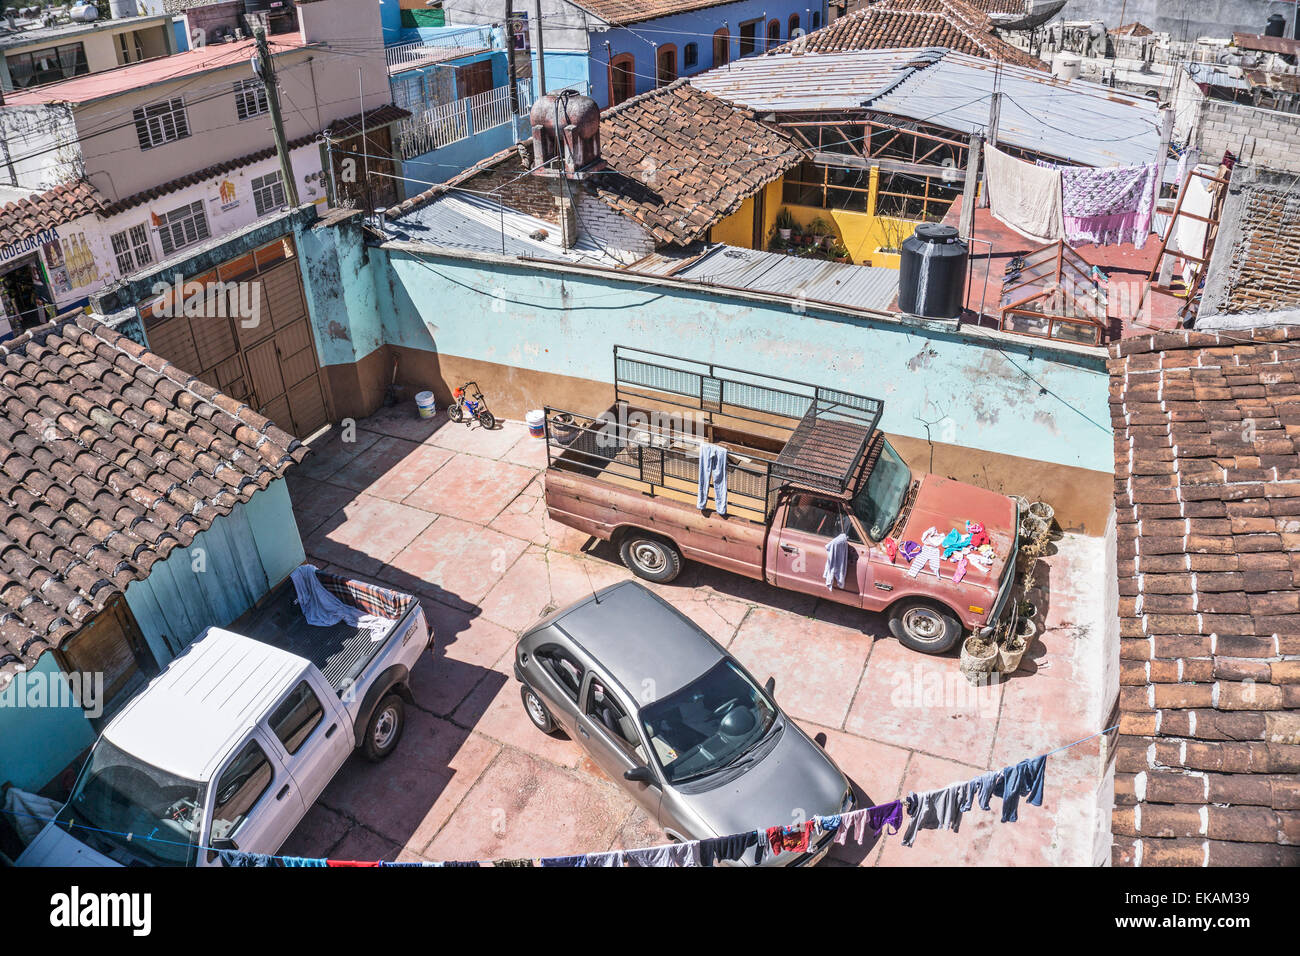 view down on courtyards hidden from street where old truck is seen used as drying surface for clothes overflowing - Stock Image